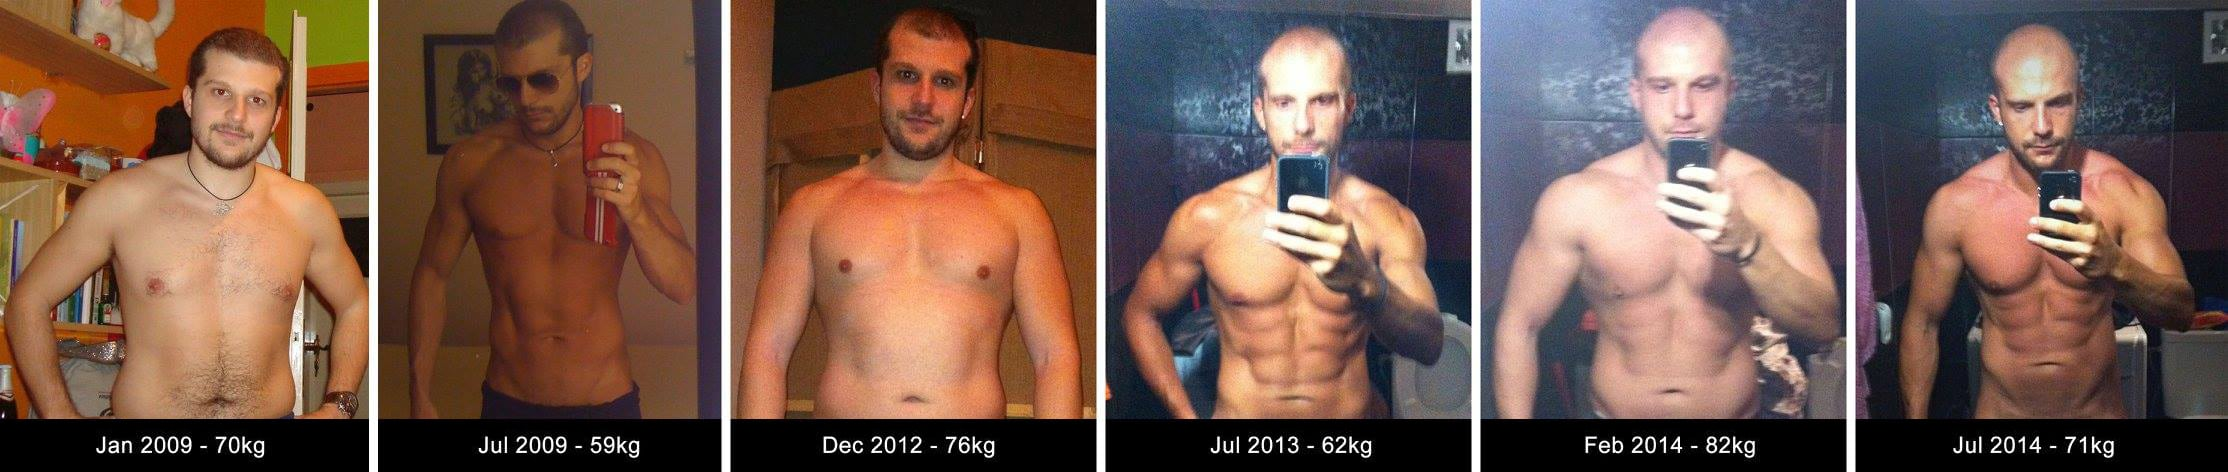 body through the years - roberto zanon